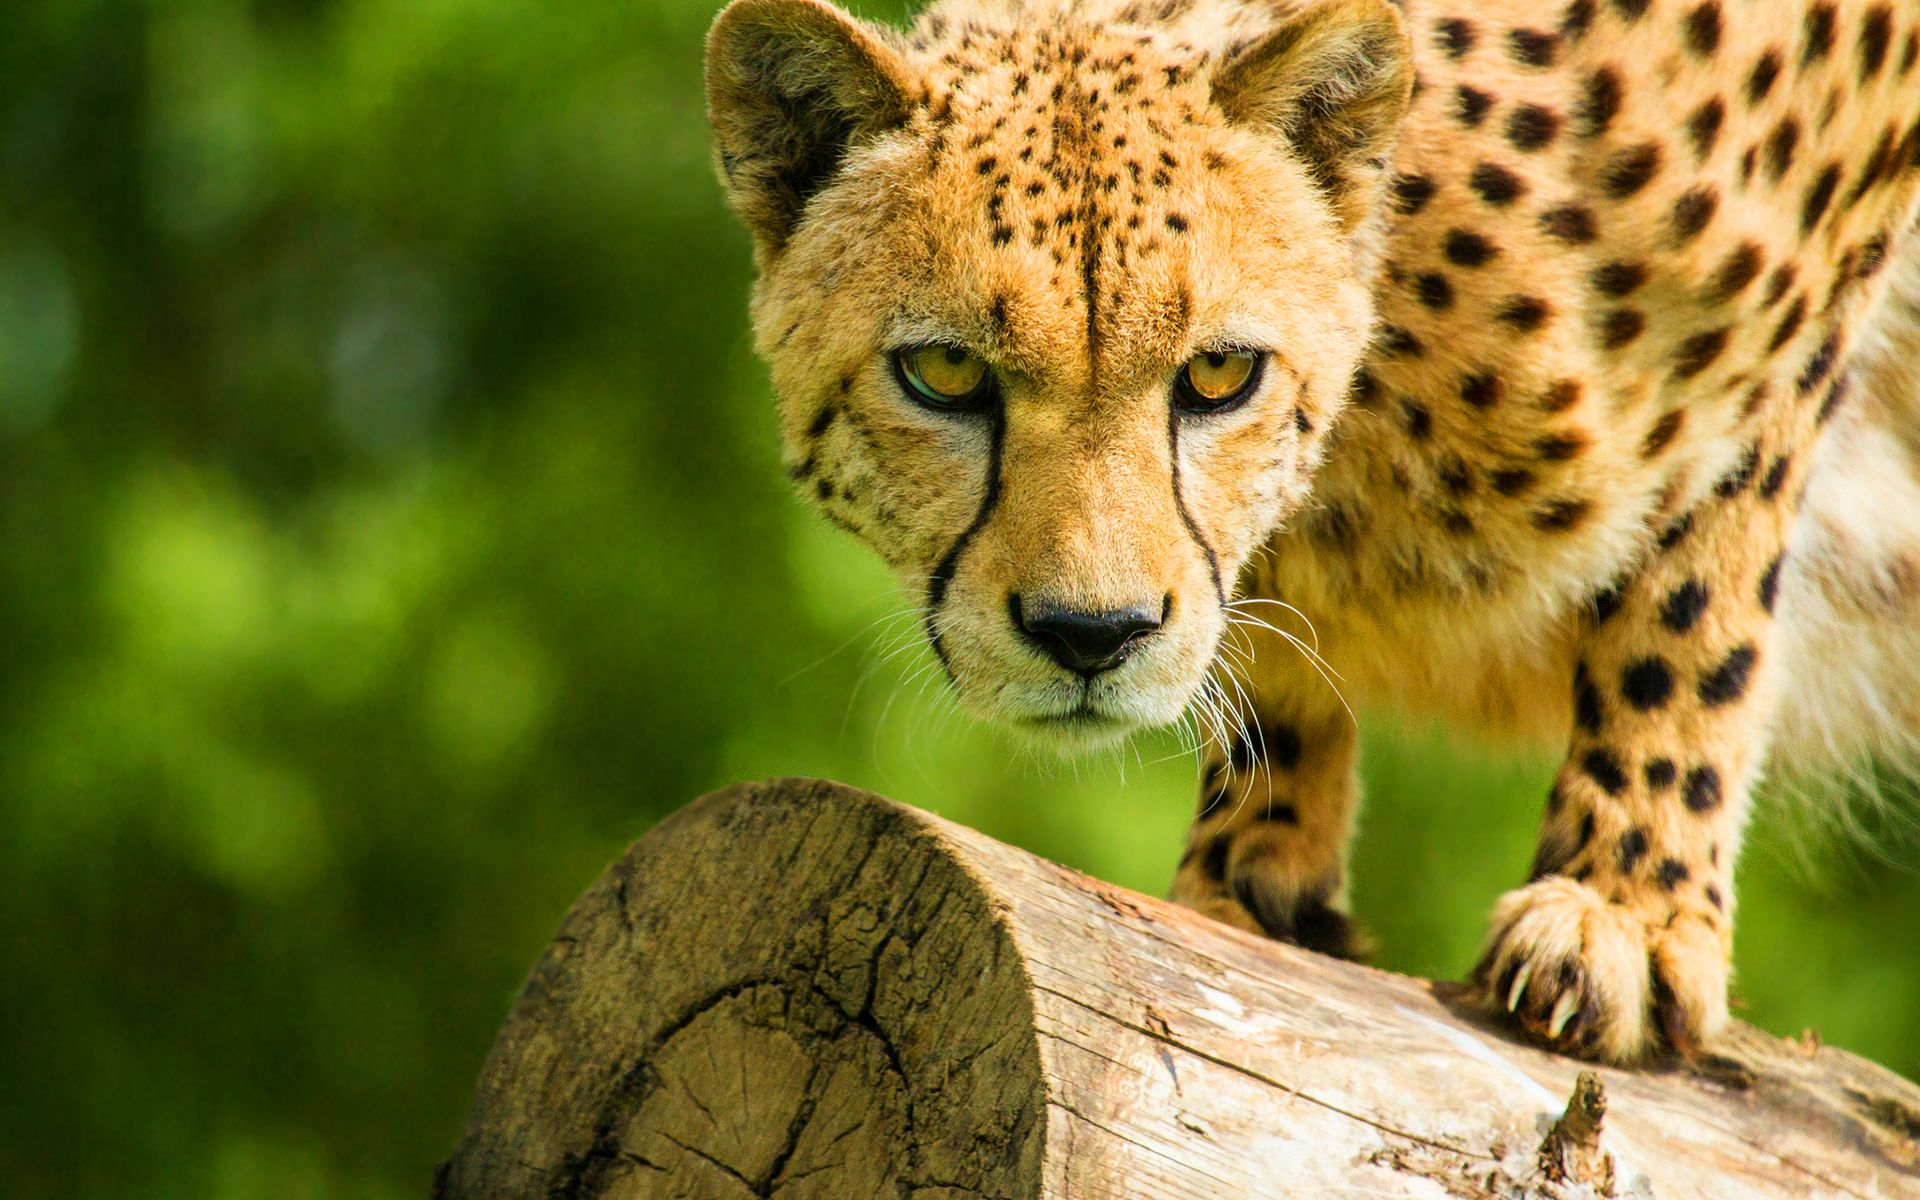 Cheetah HD wallpaper for download